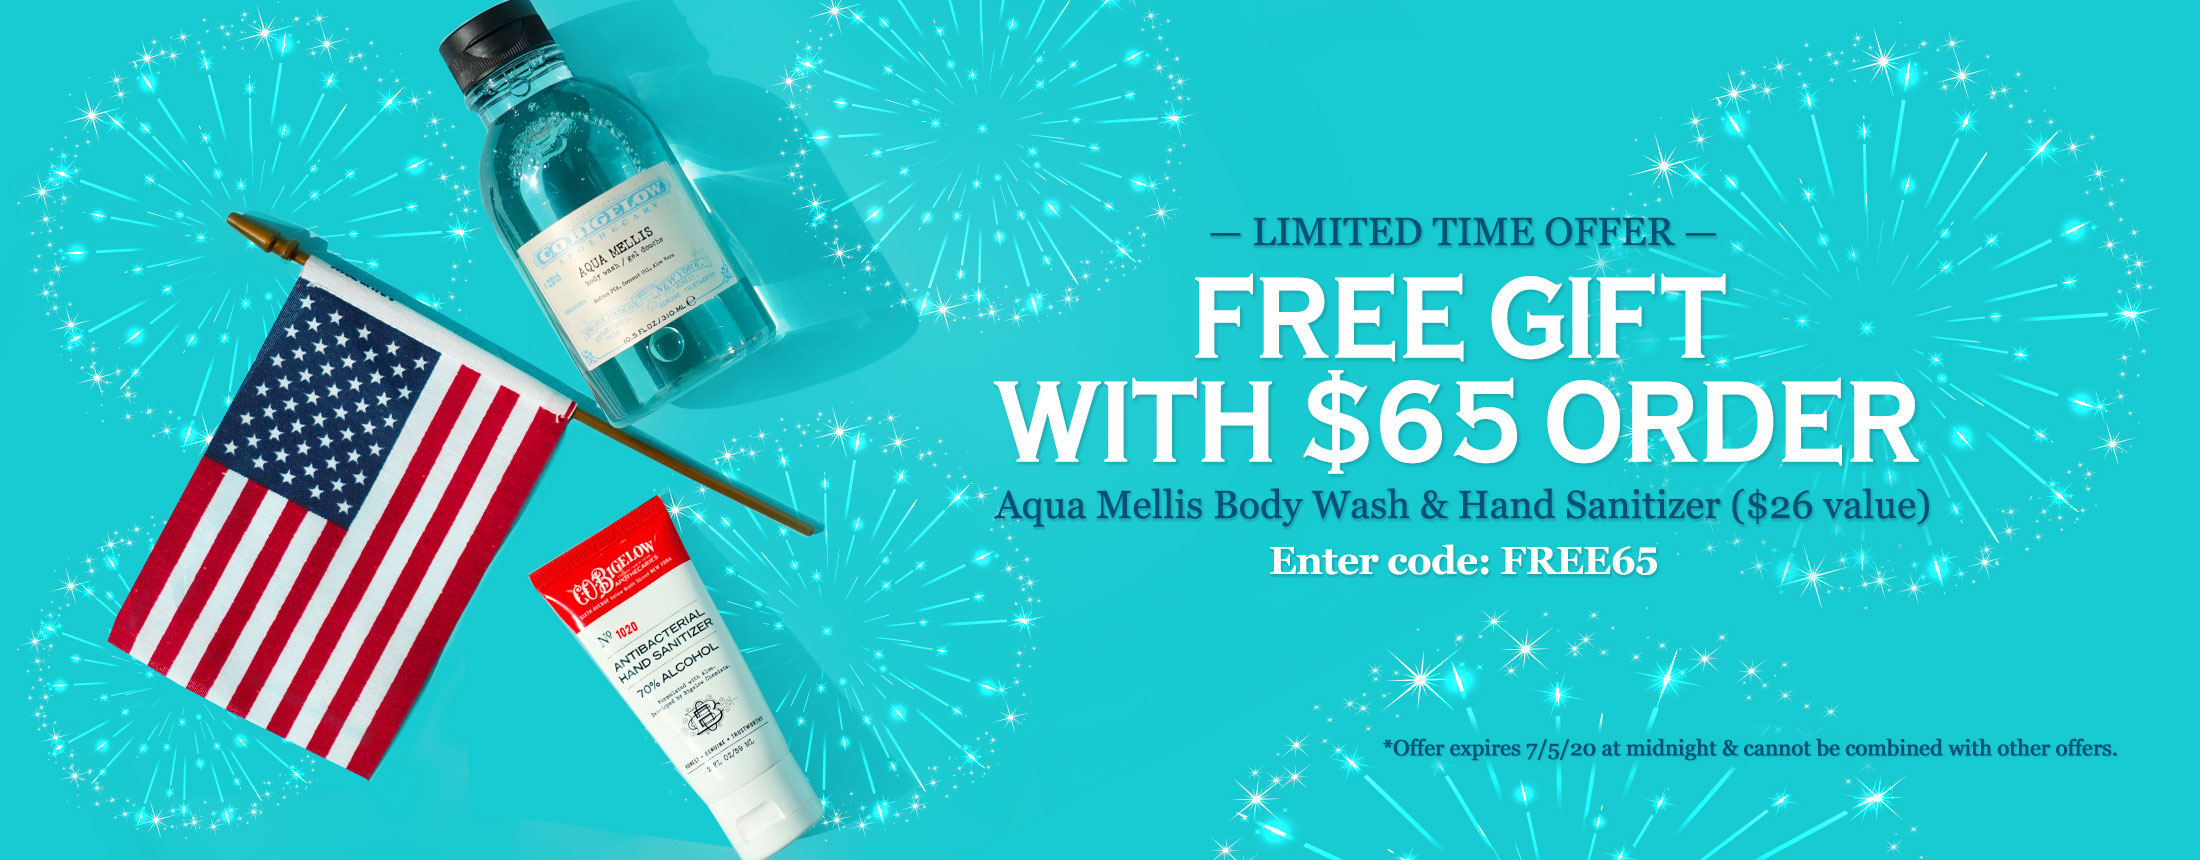 Free Gift with $65 Order